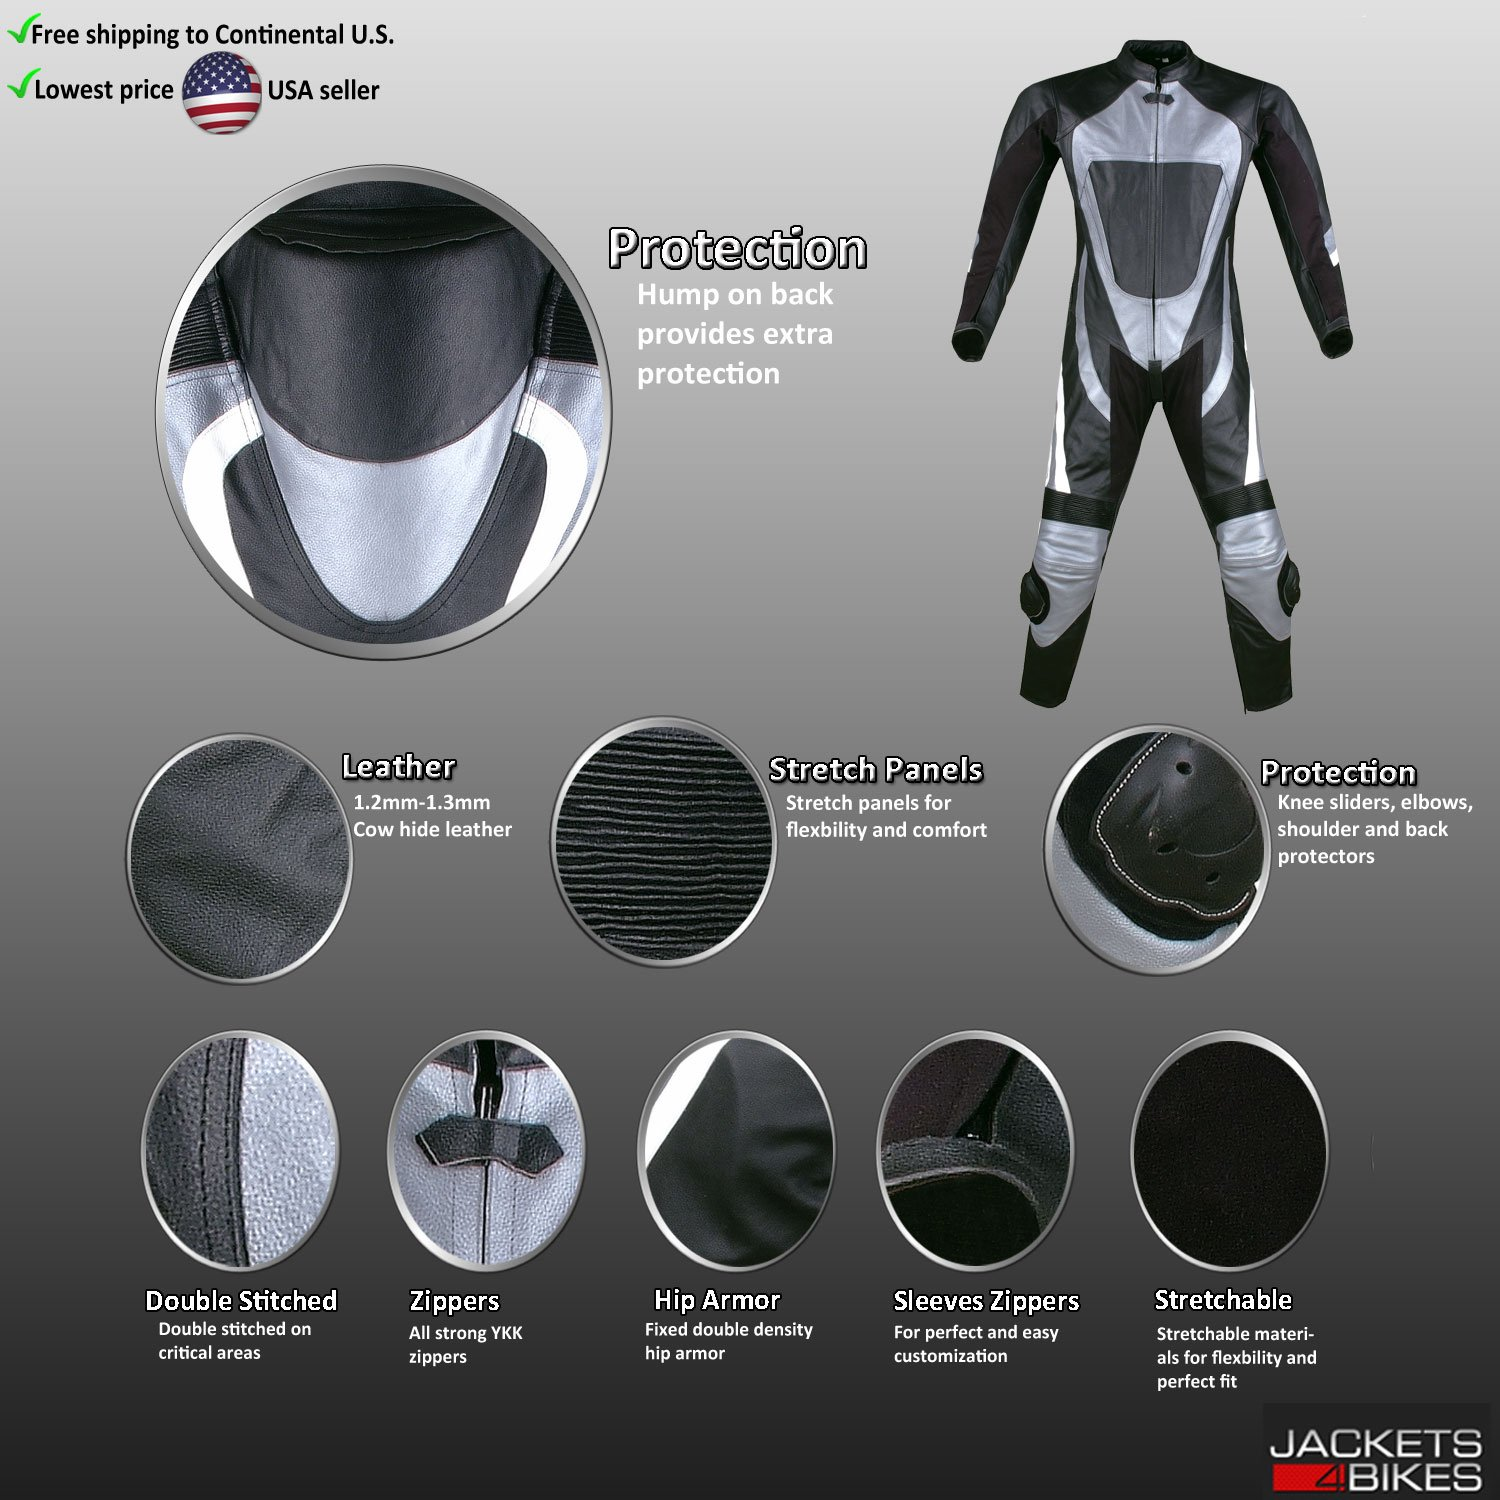 New 1PC One-Piece Armor Leather Motorcycle Racing Suit Silver w/Hump US Size 40 by Jackets 4 Bikes (Image #5)